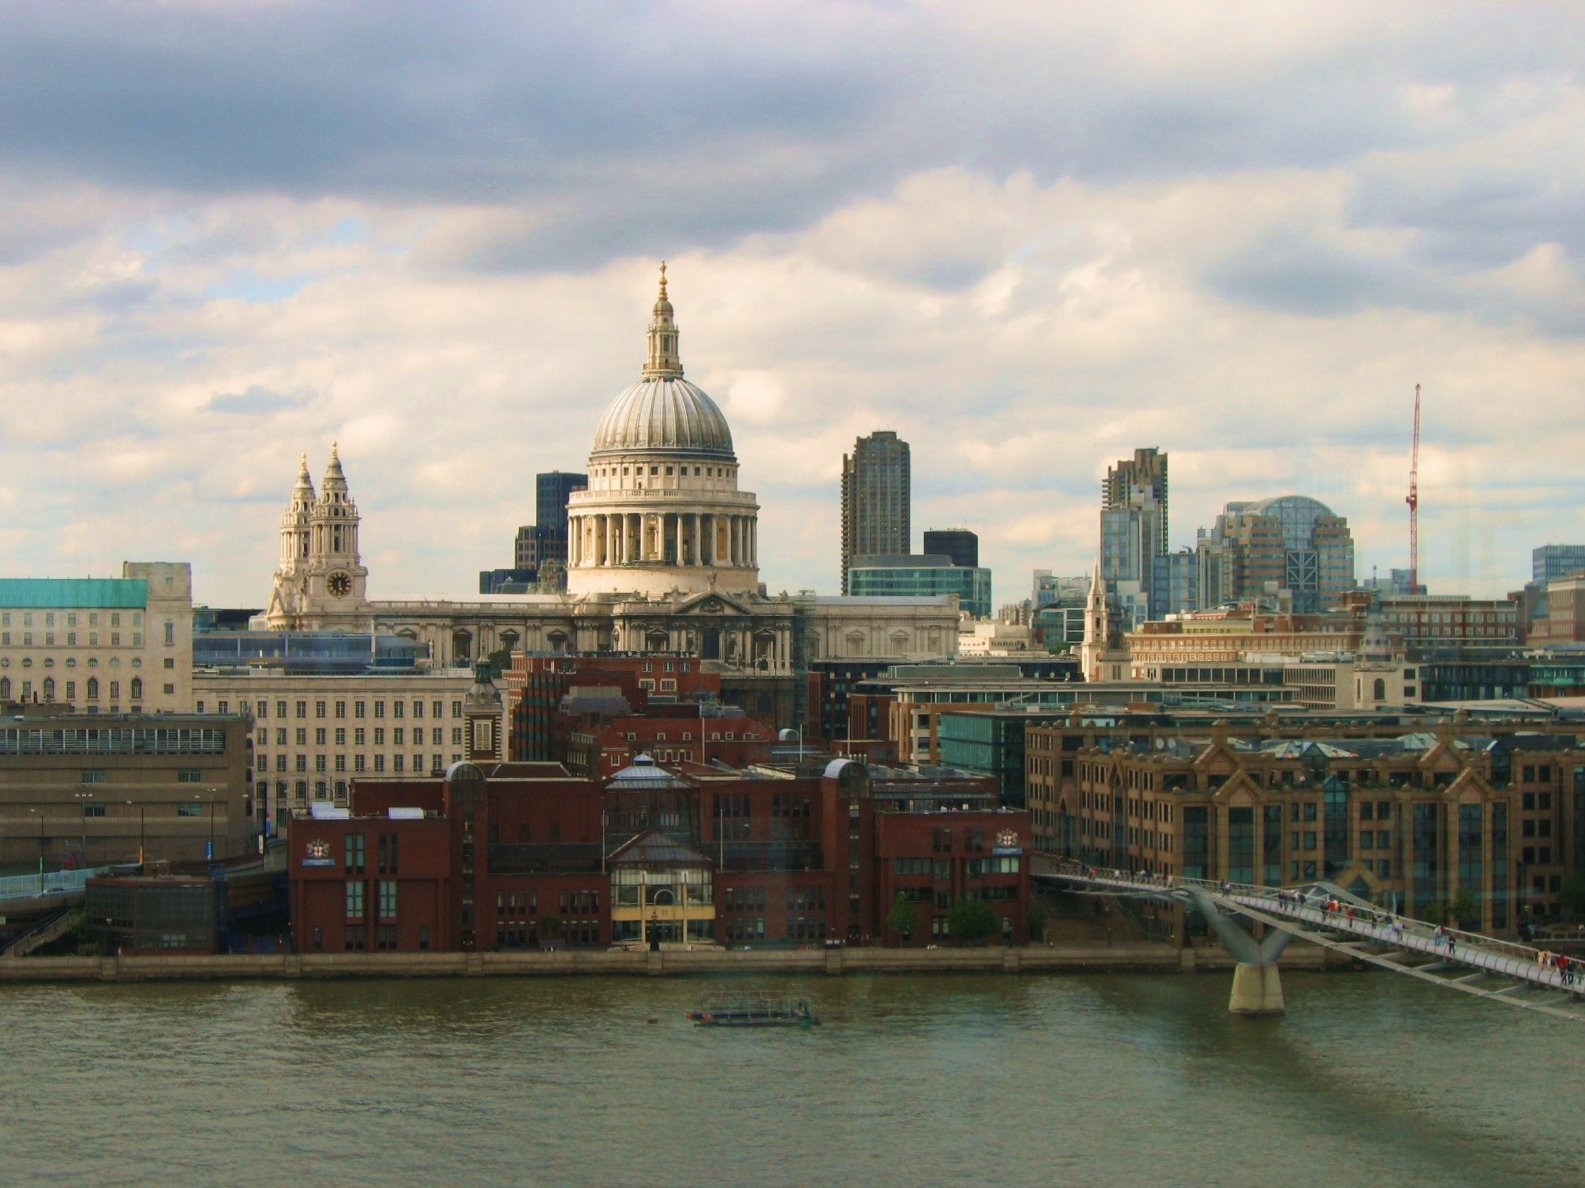 View from Switch House, Tate Modern